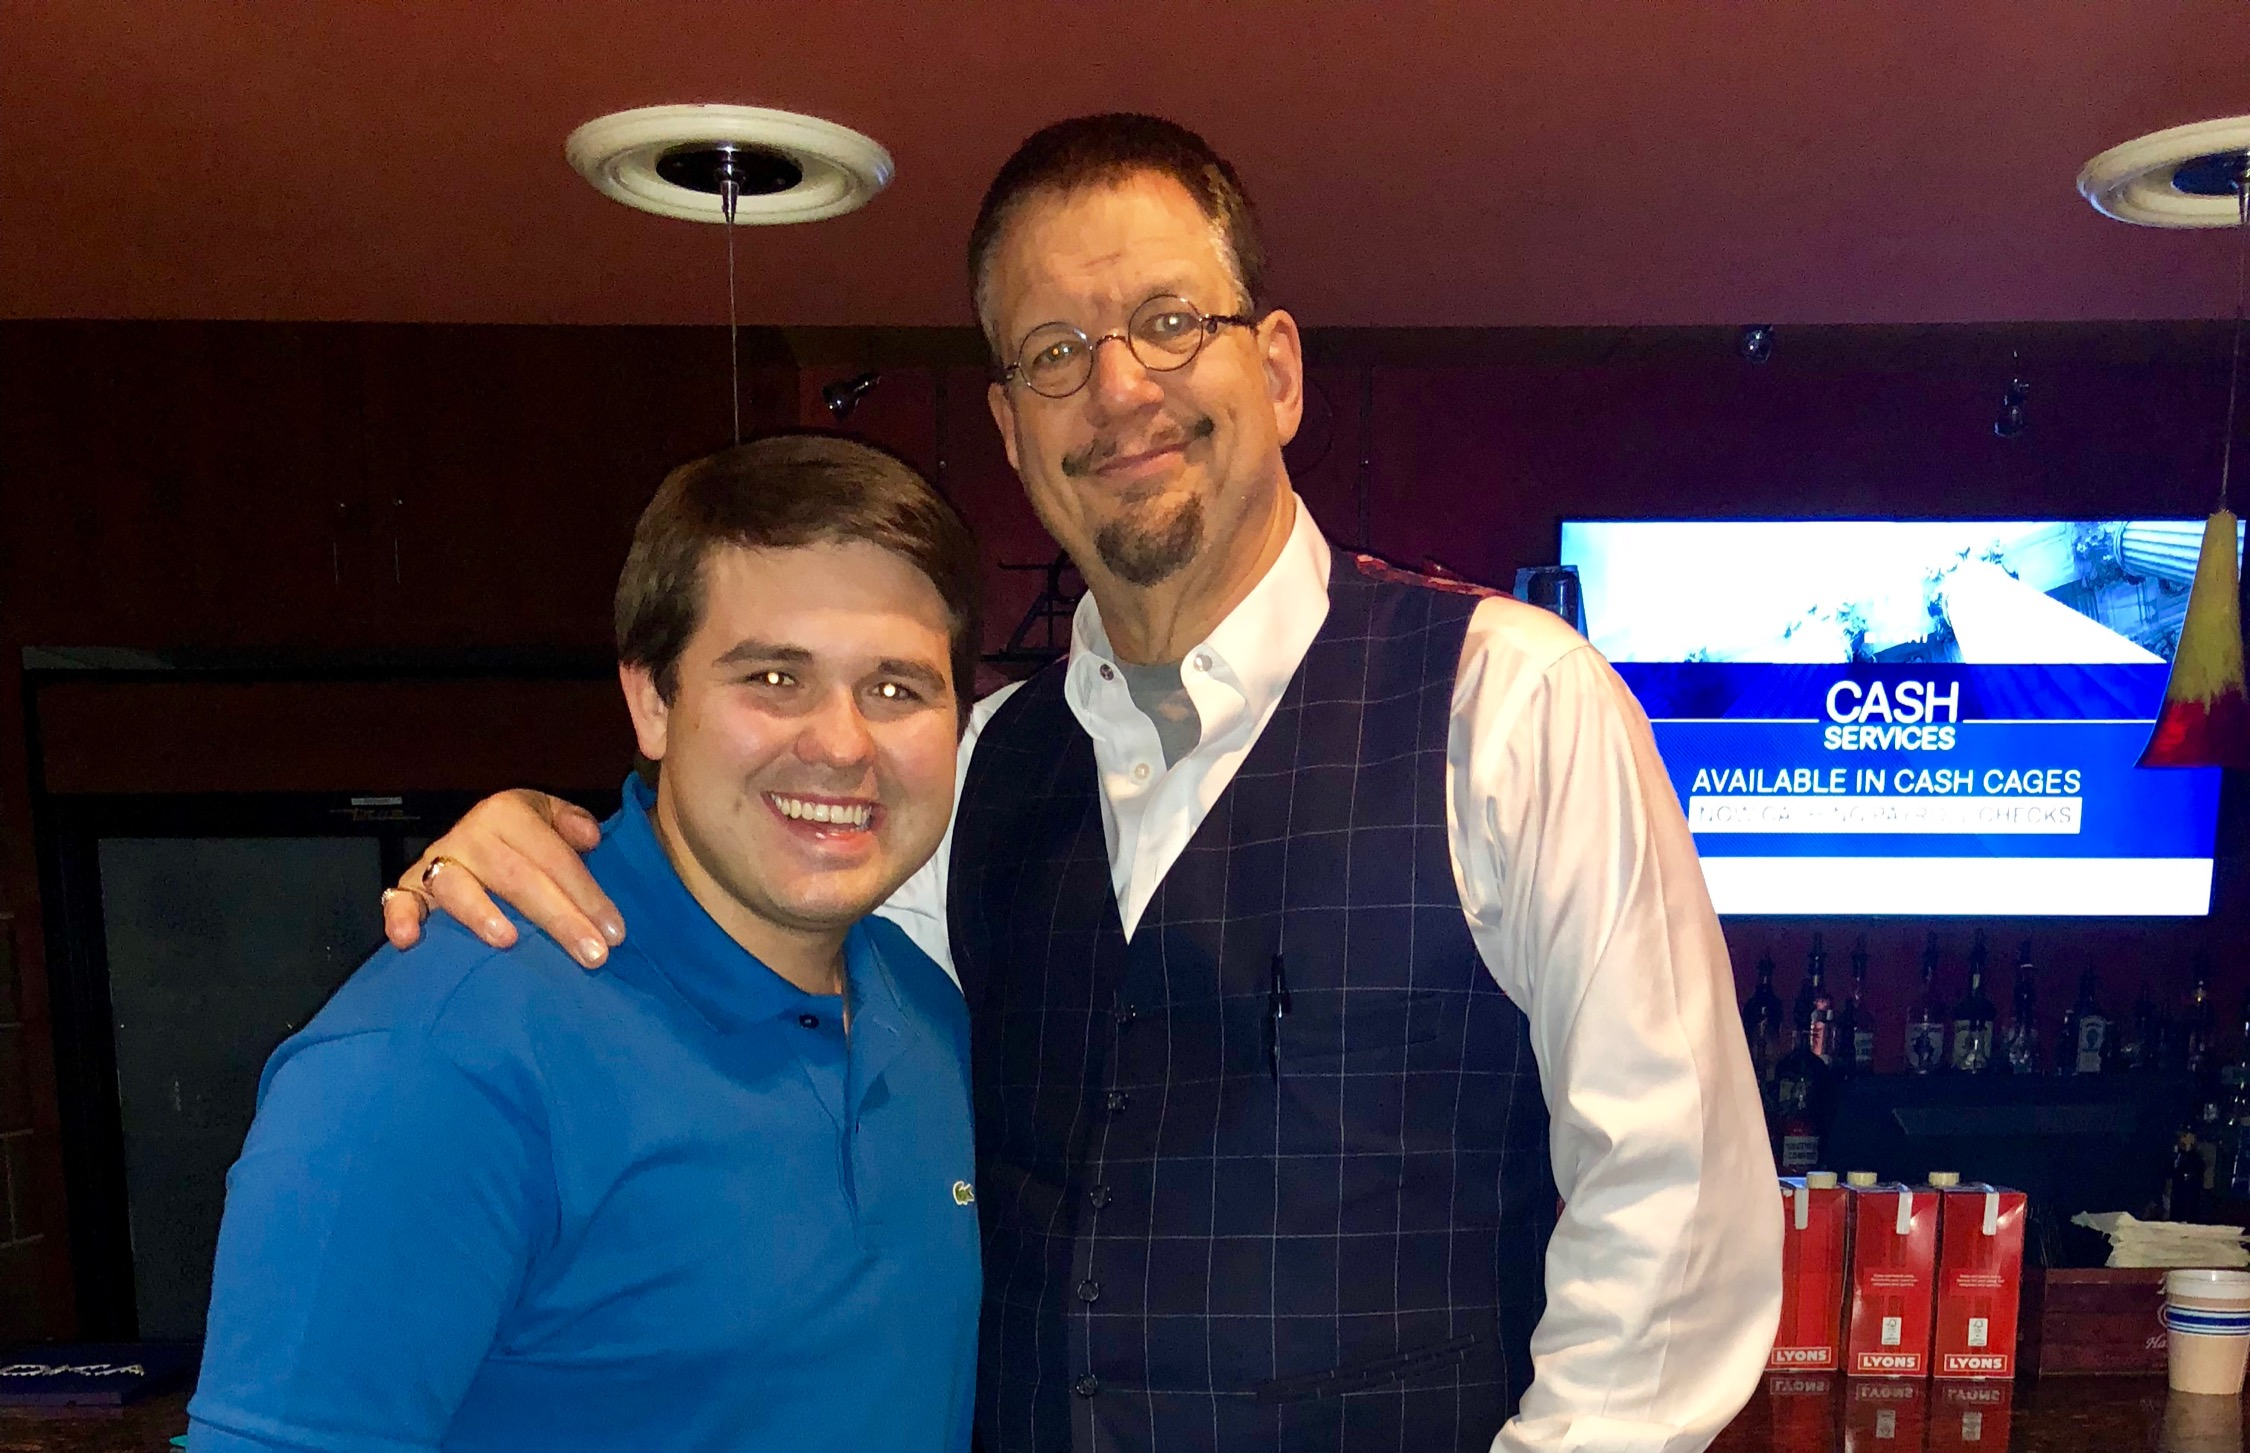 JP with Penn Jillete, of Penn & Teller